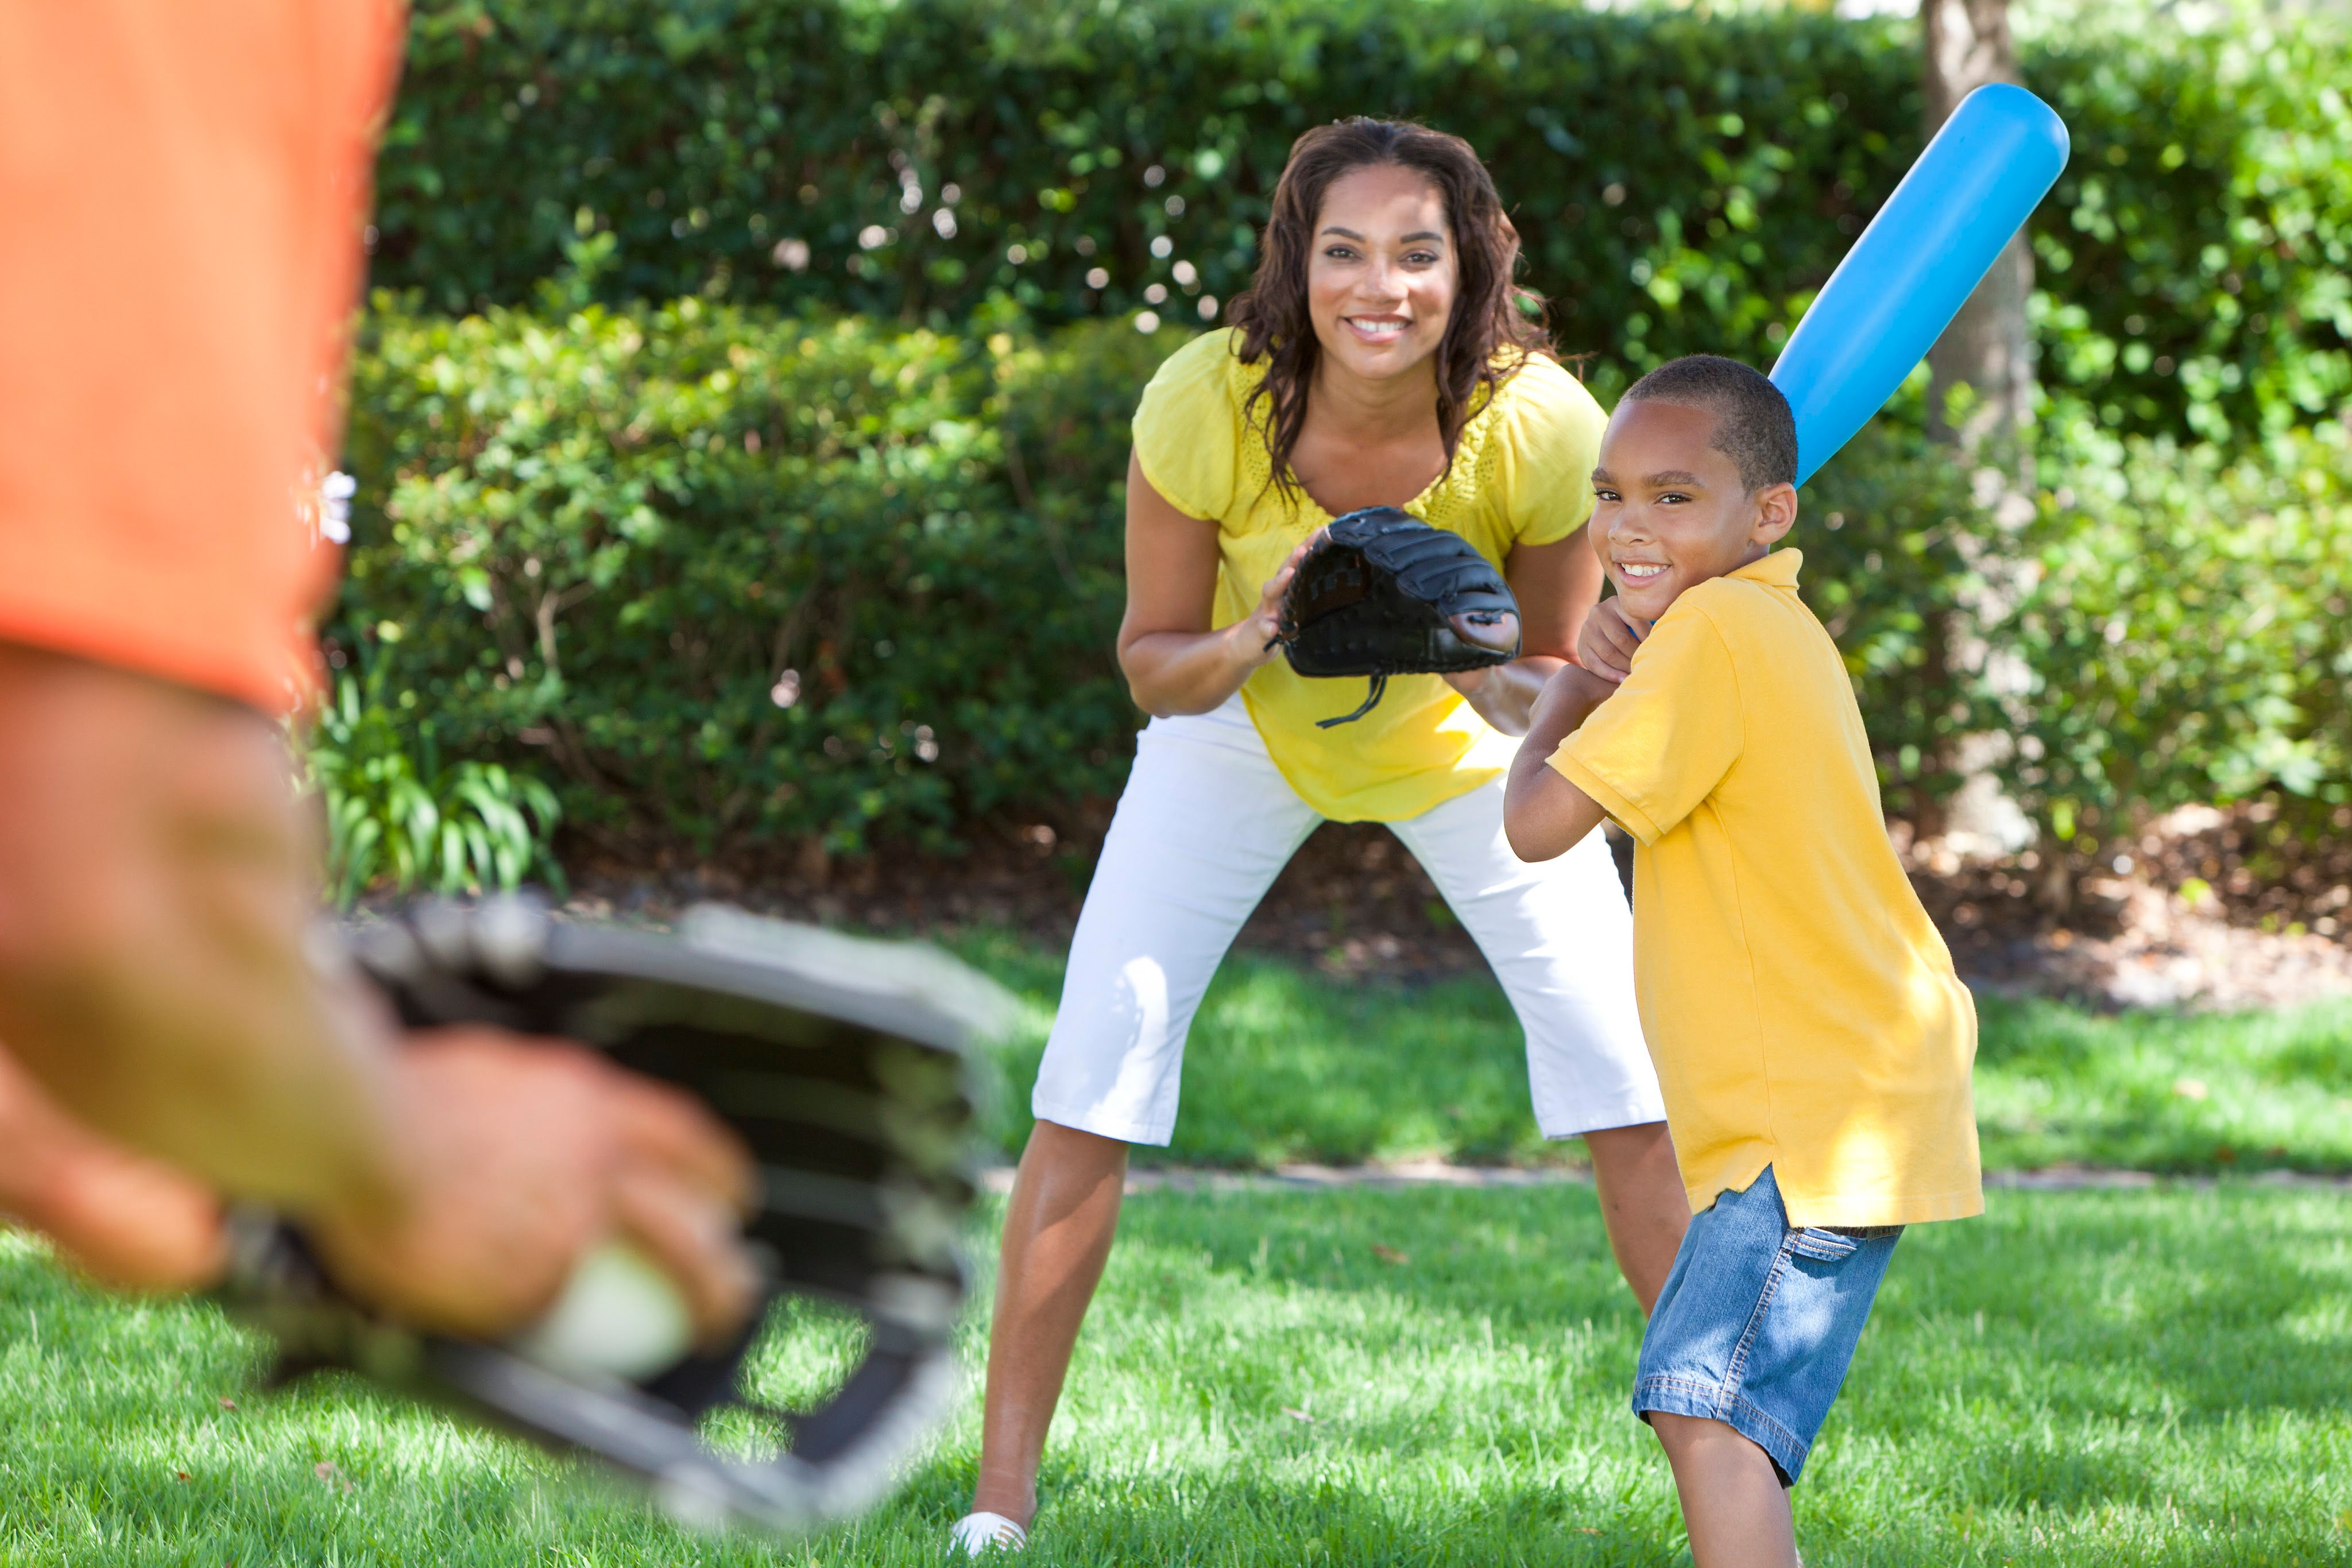 baseball-birthday-party-games-for-kids